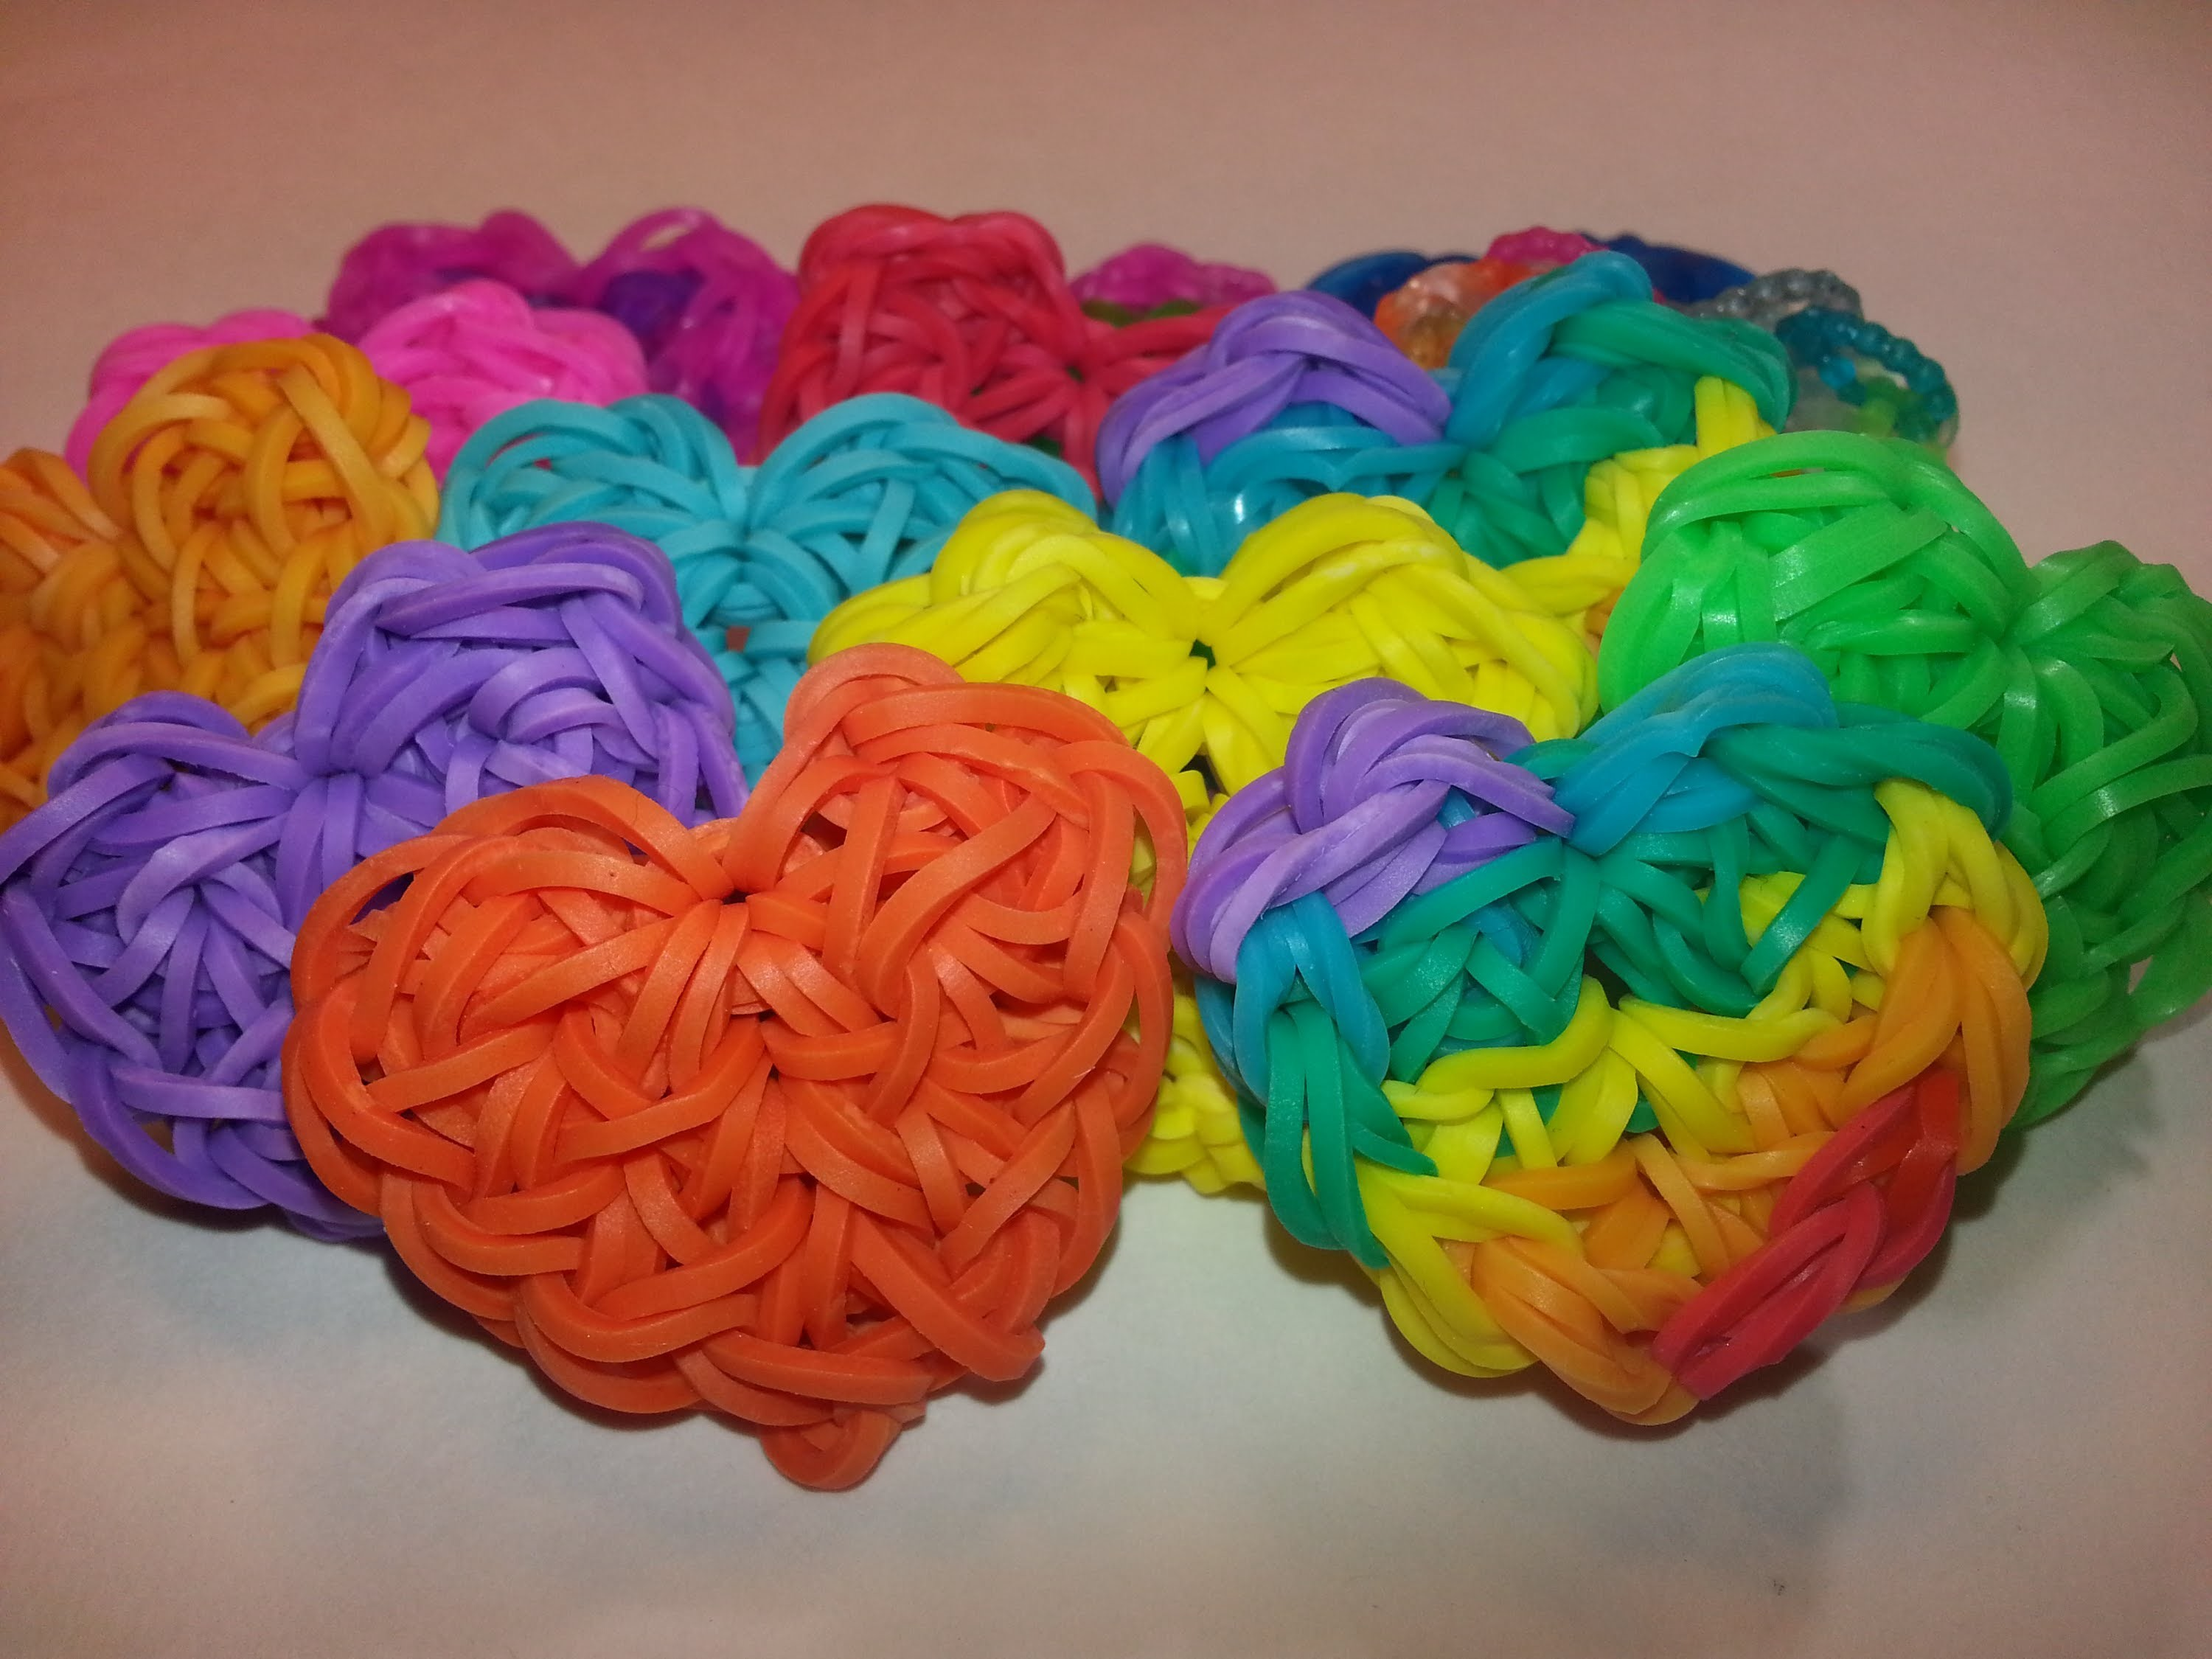 ONE LOOM Lovely Heart Charm Tutorial by feelinspiffy (Rainbow Loom)